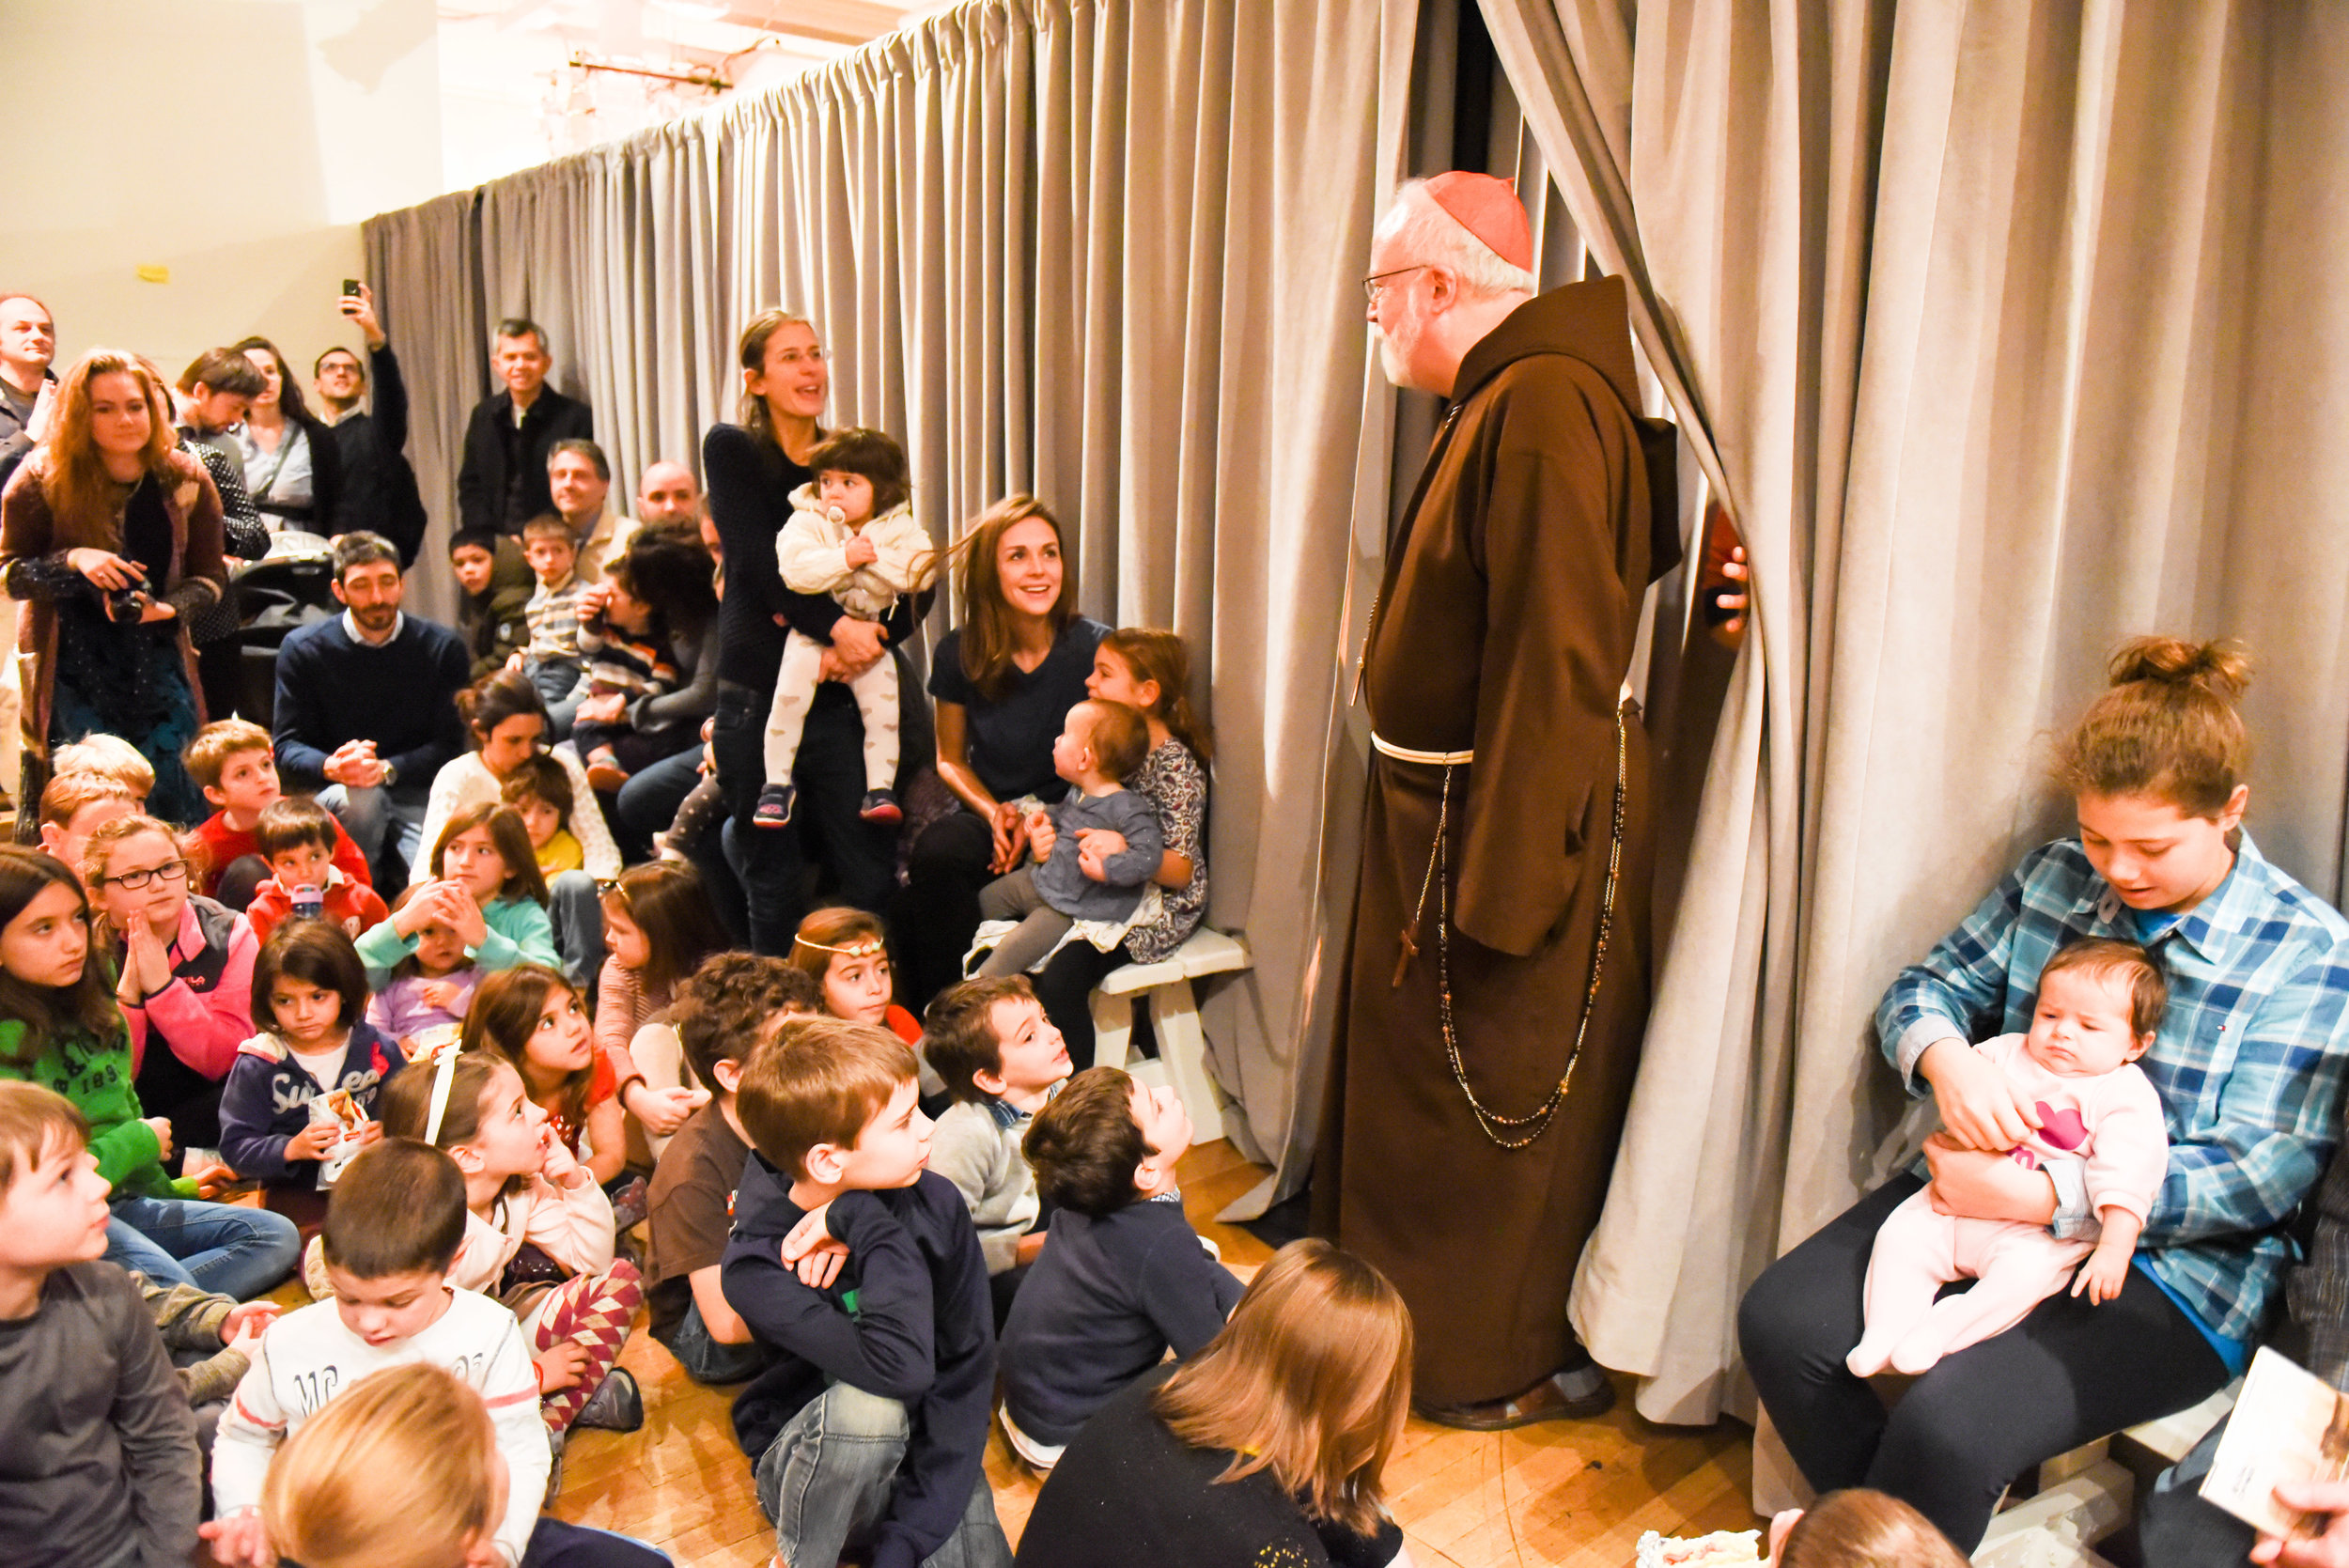 Copy of Cardinal o'Malley greets children at New York Encounter 2018